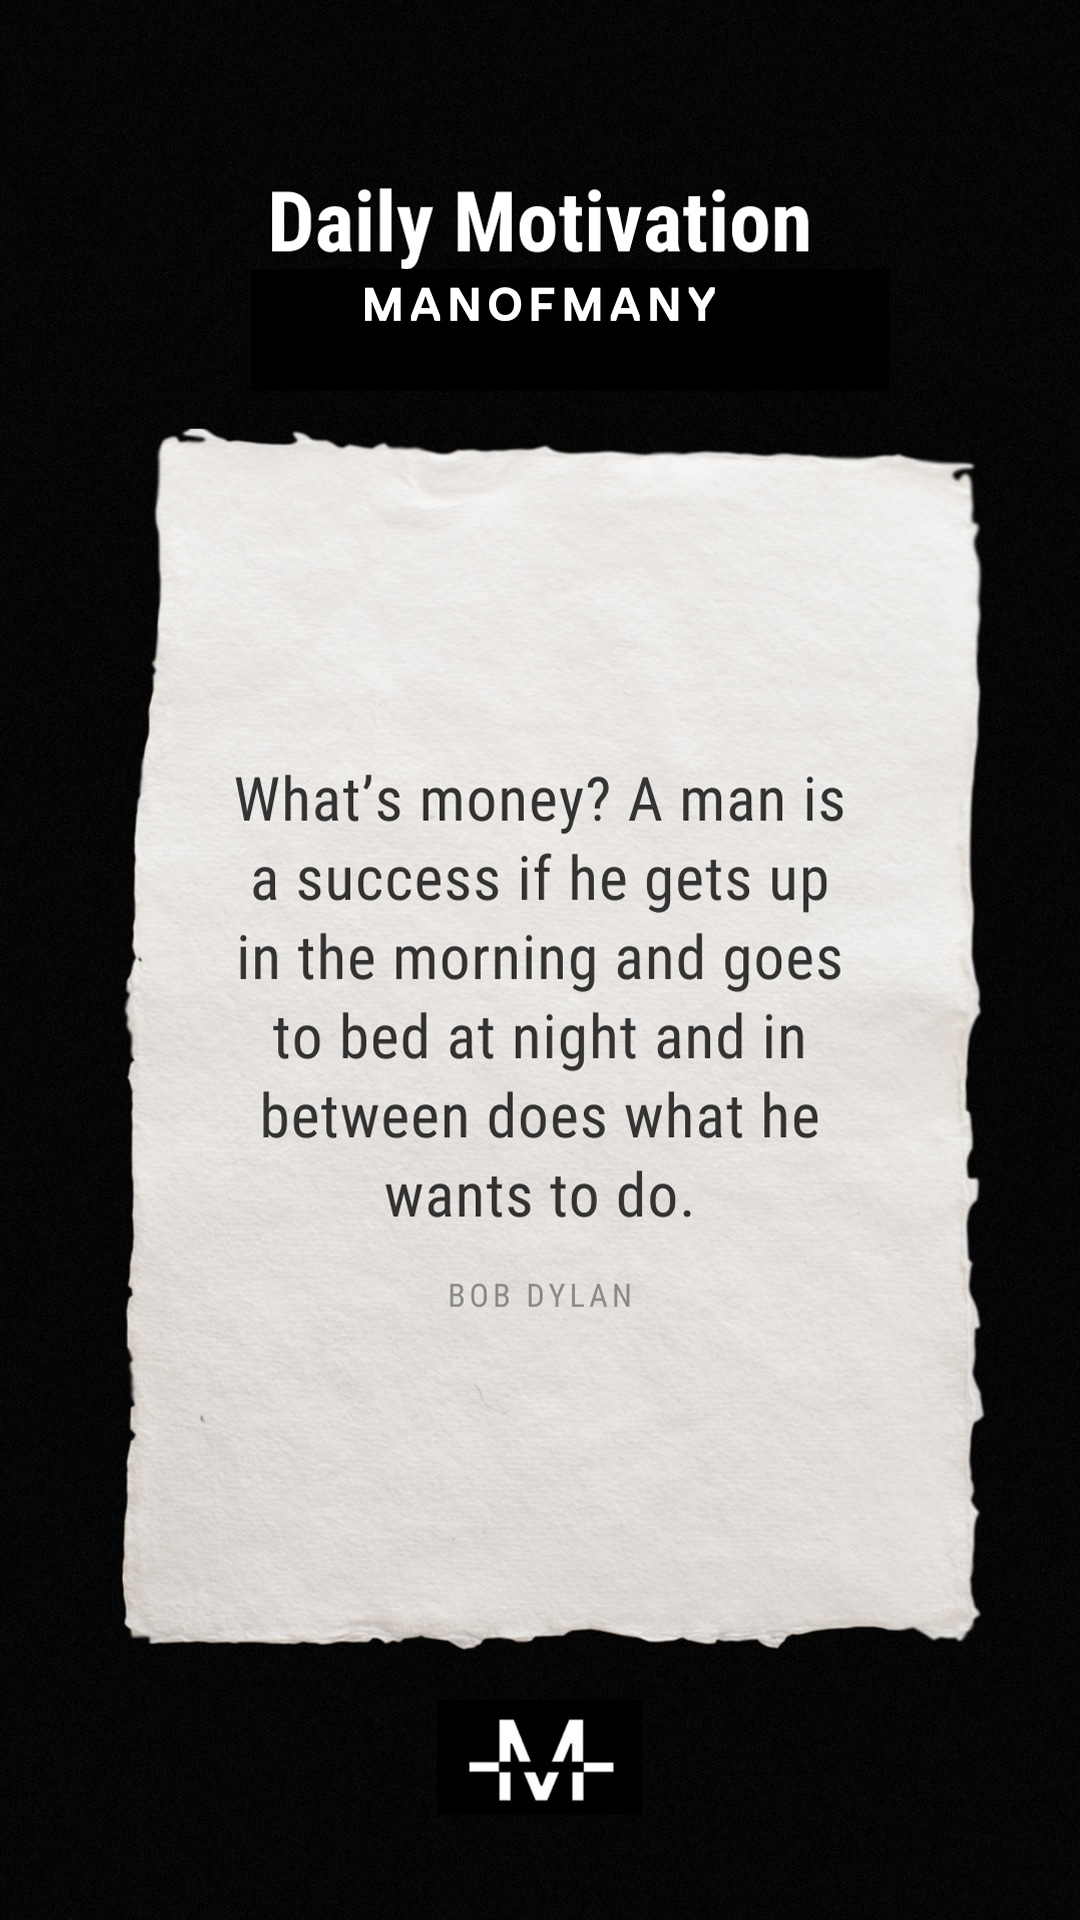 What's money? A man is a success if he gets up in the morning and goes to bed at night and in between does what he wants to do. –Bob Dylan quote